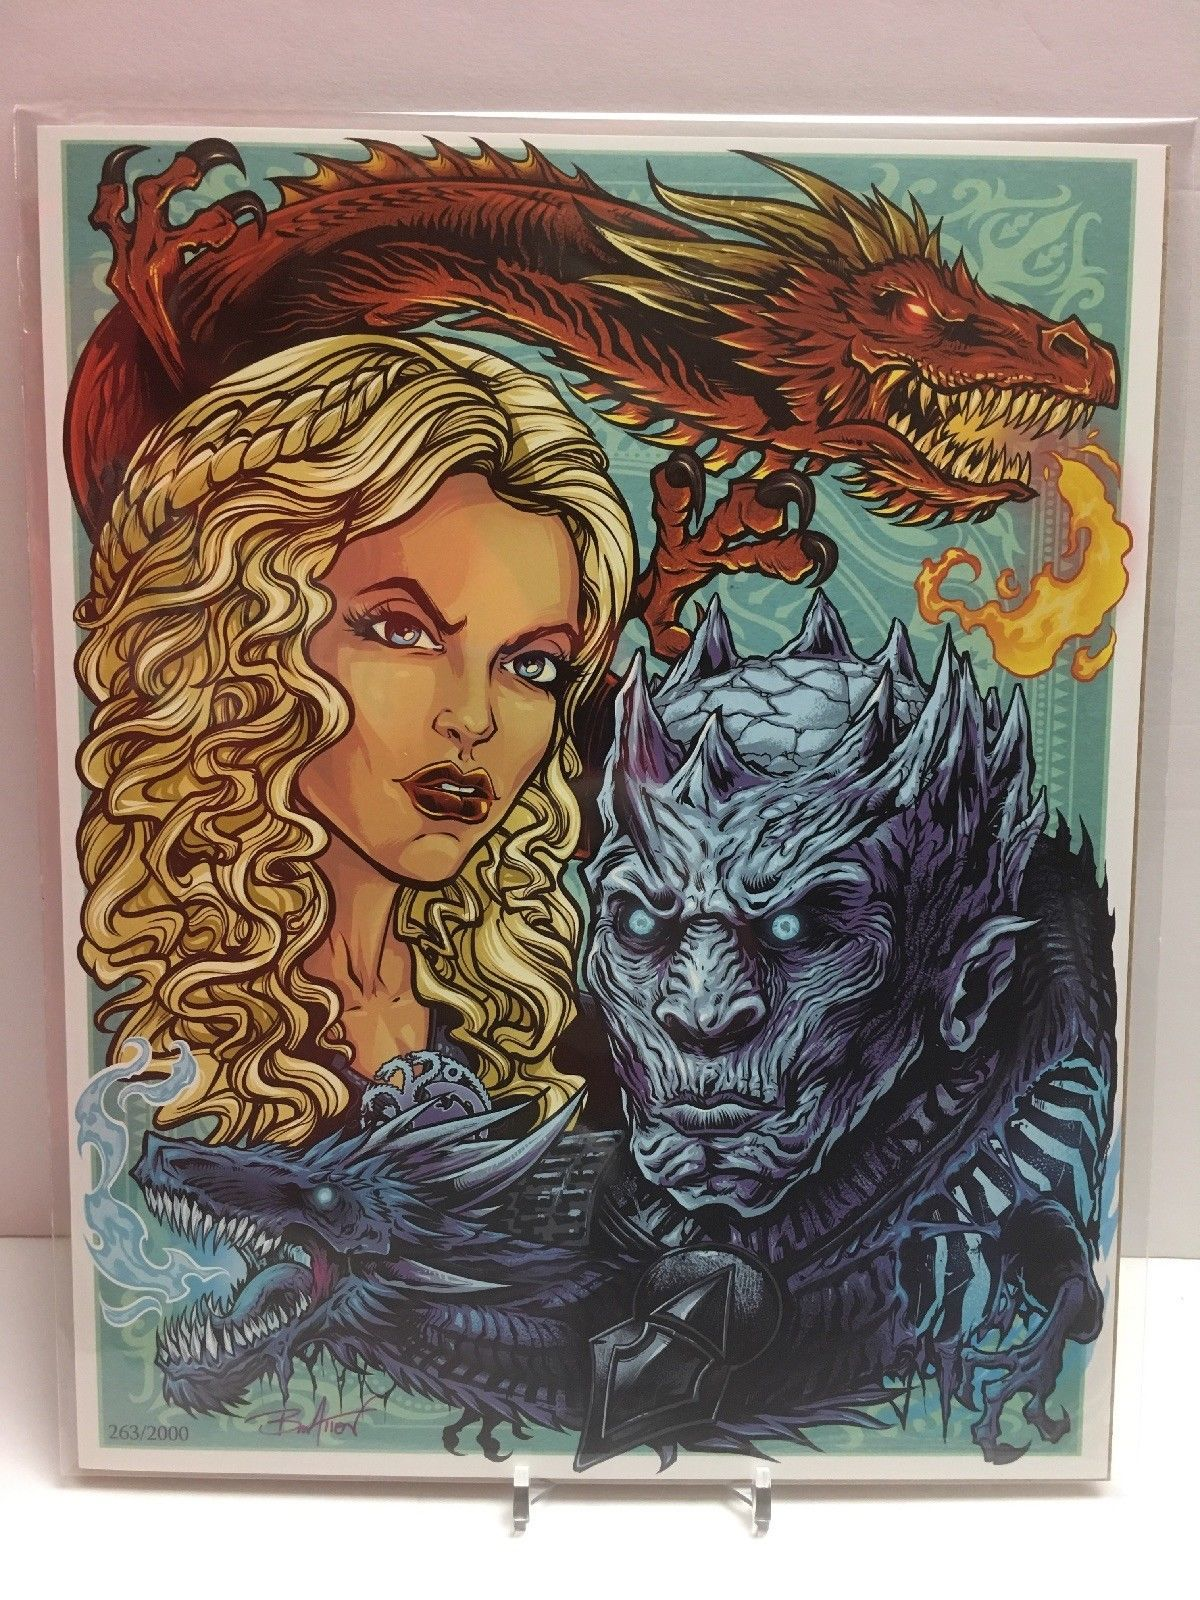 Primary image for Game of Thrones Fire & Ice Fan 8x10 Bam Box Exclusive Art Print by Brian Allen